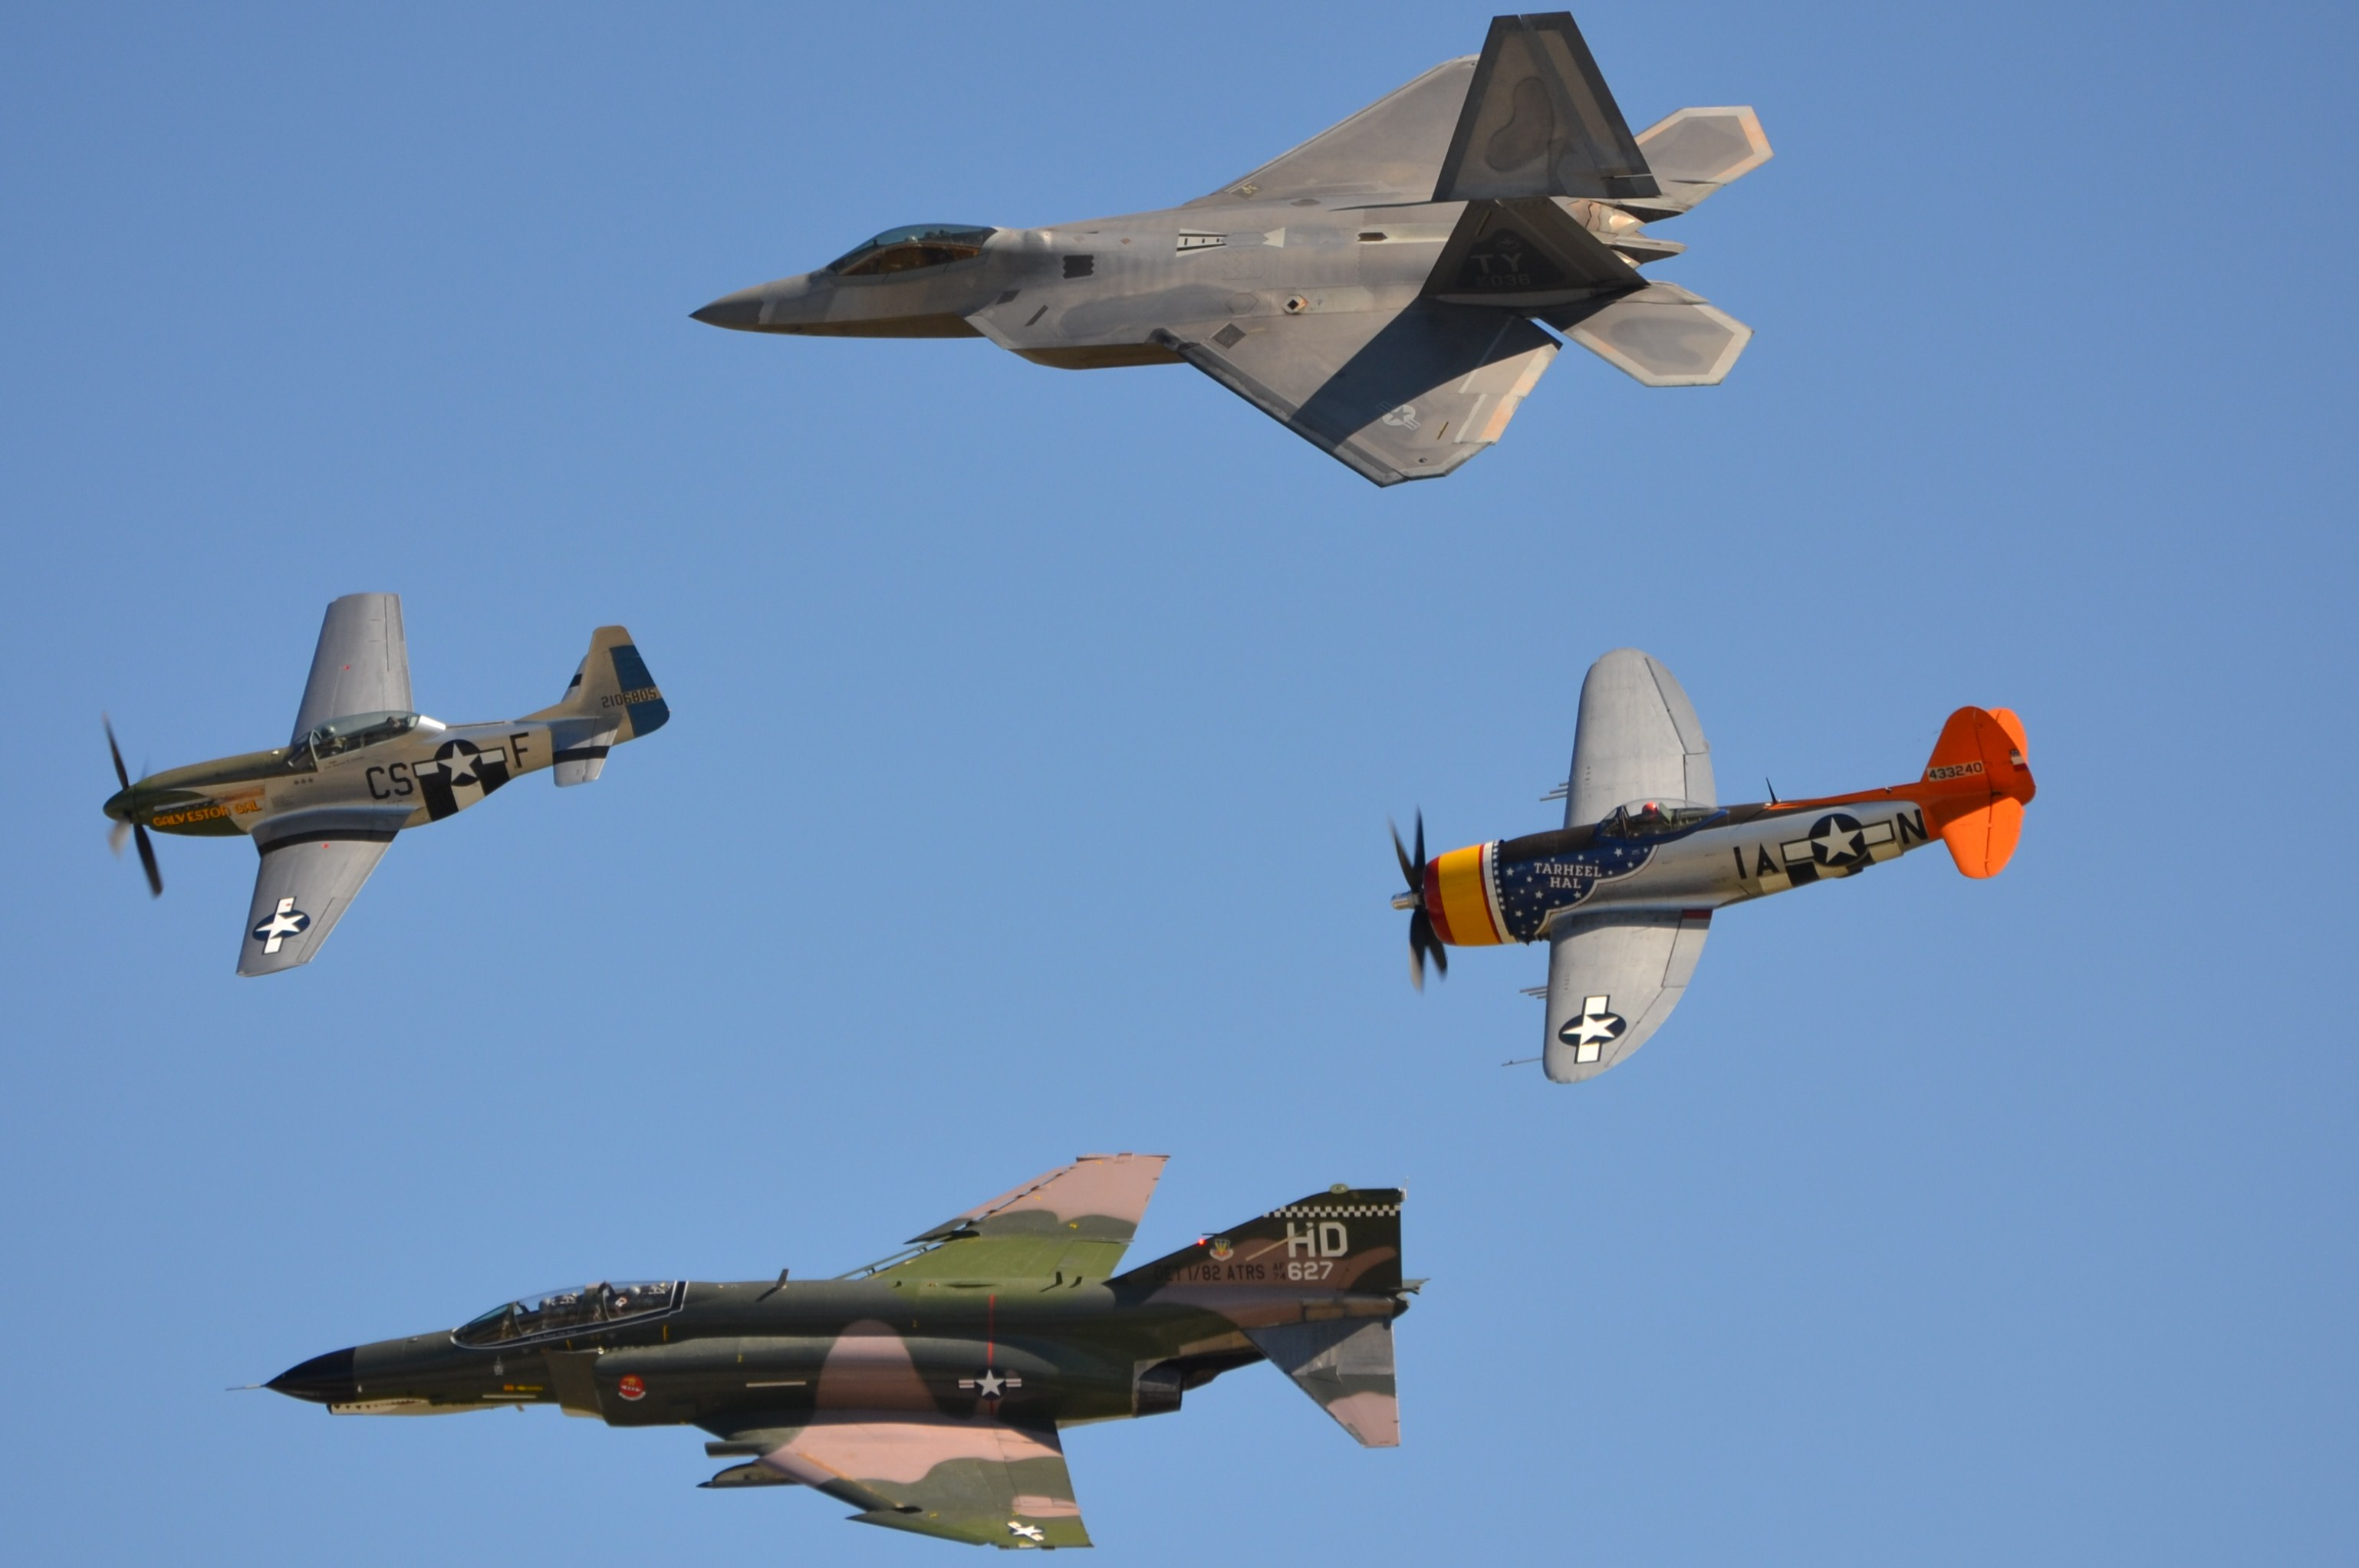 Wings Over Houston Airshow (pic heavy)-dsc_0597.jpg